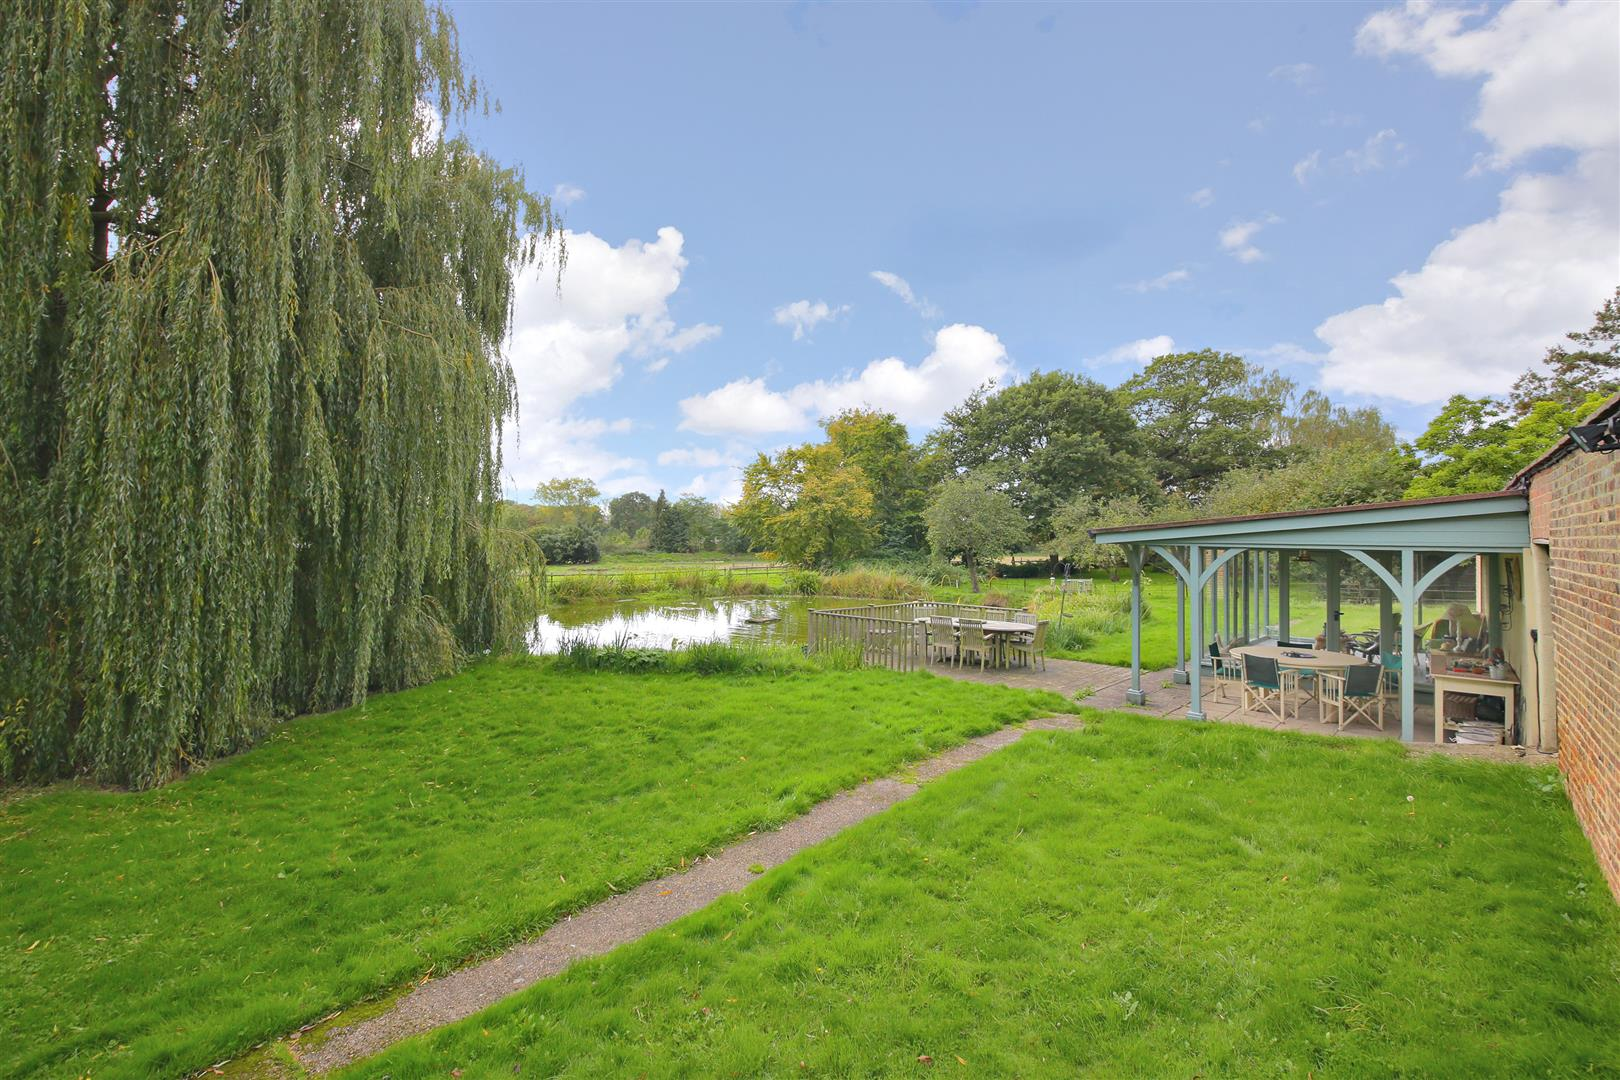 5 bed to rent in Letchmore Heath - (Property Image 15)